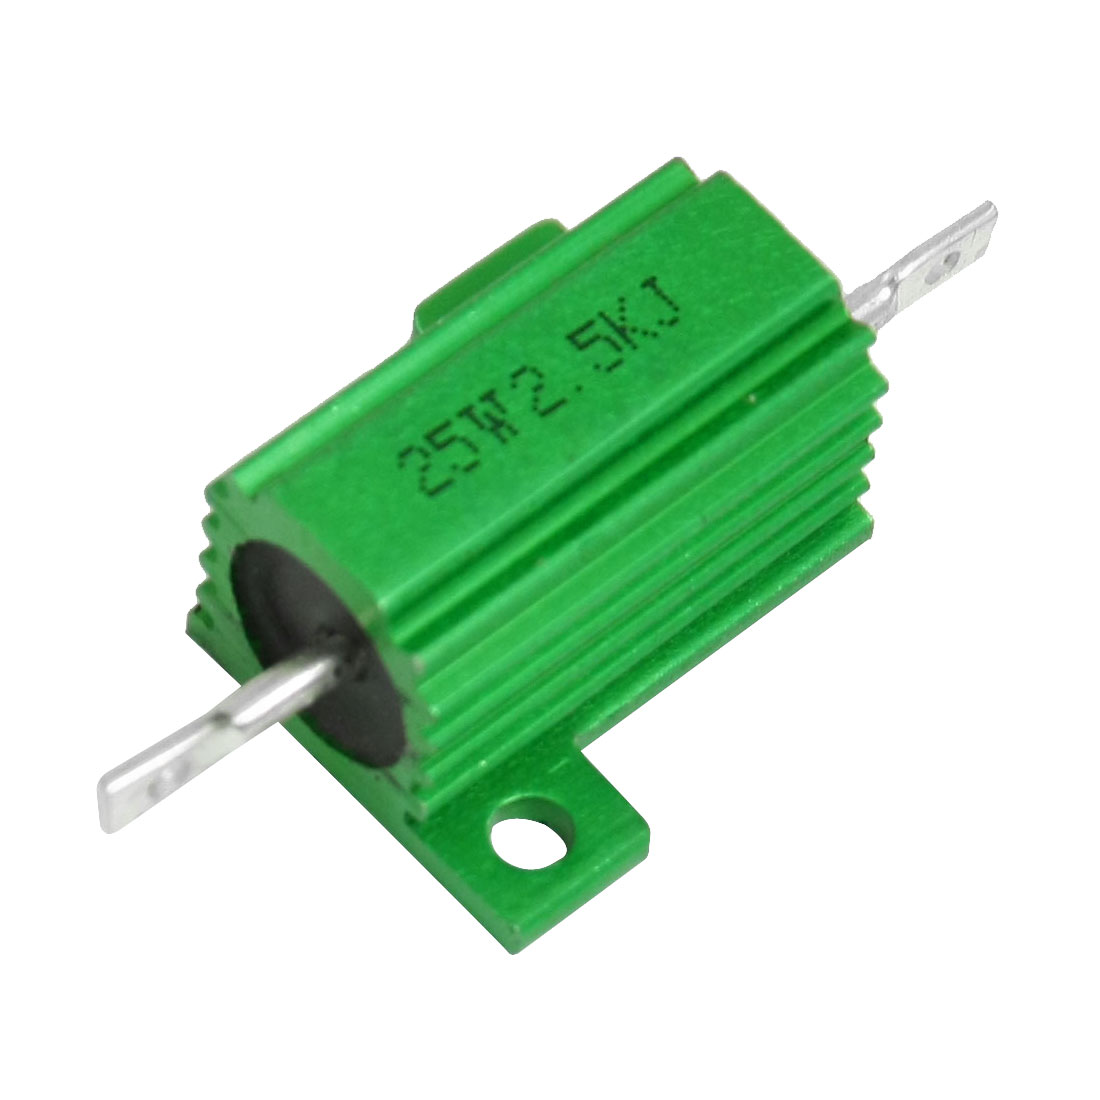 25W Power 2.5K Ohm 5% Chassis Mount Green Aluminium Clad Resistor